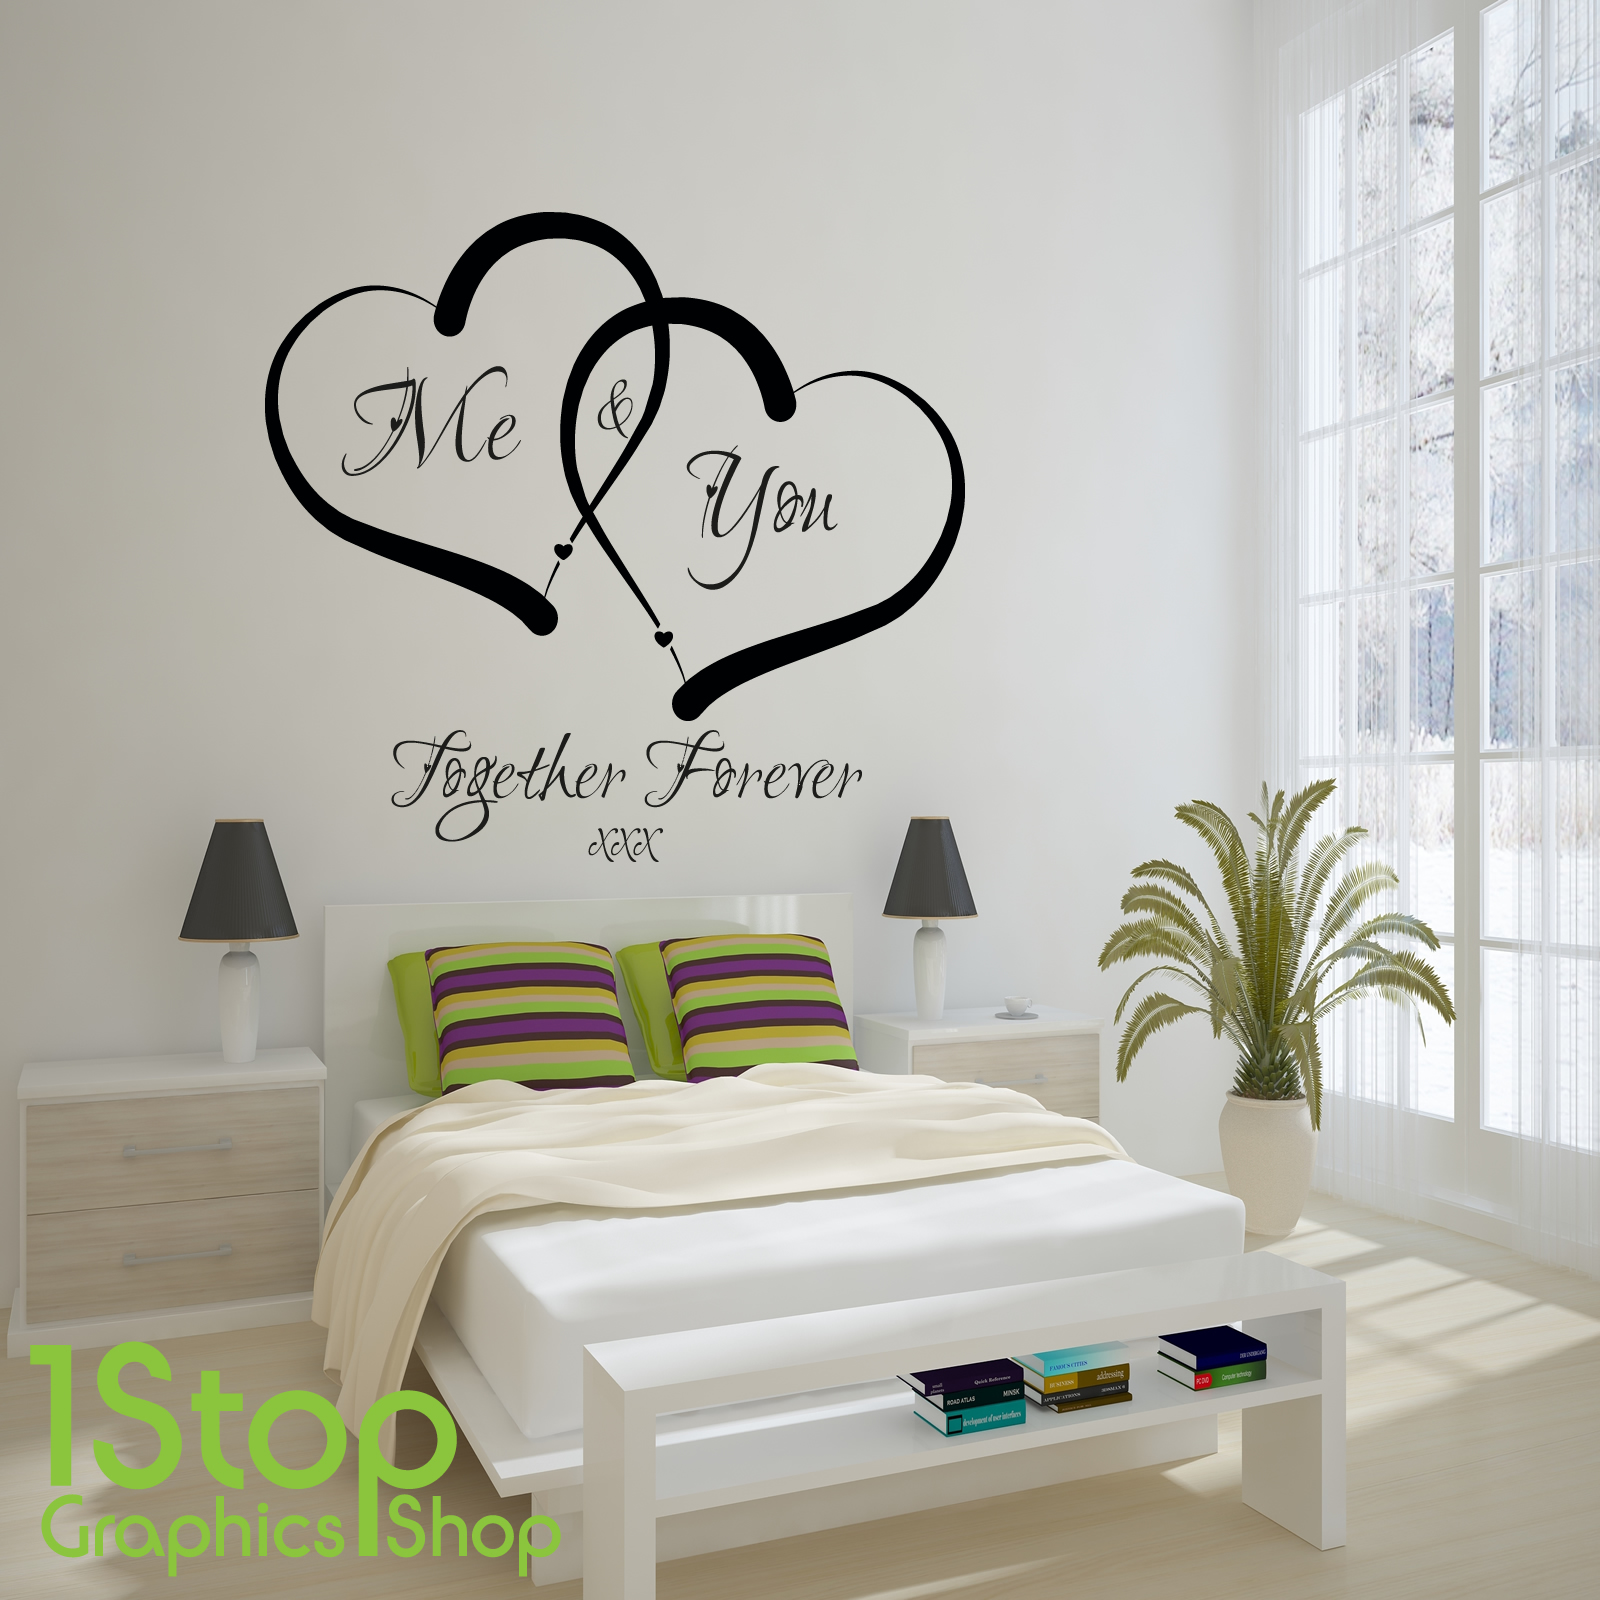 Me and you love heart wall sticker quote home wall art decal item description amipublicfo Choice Image